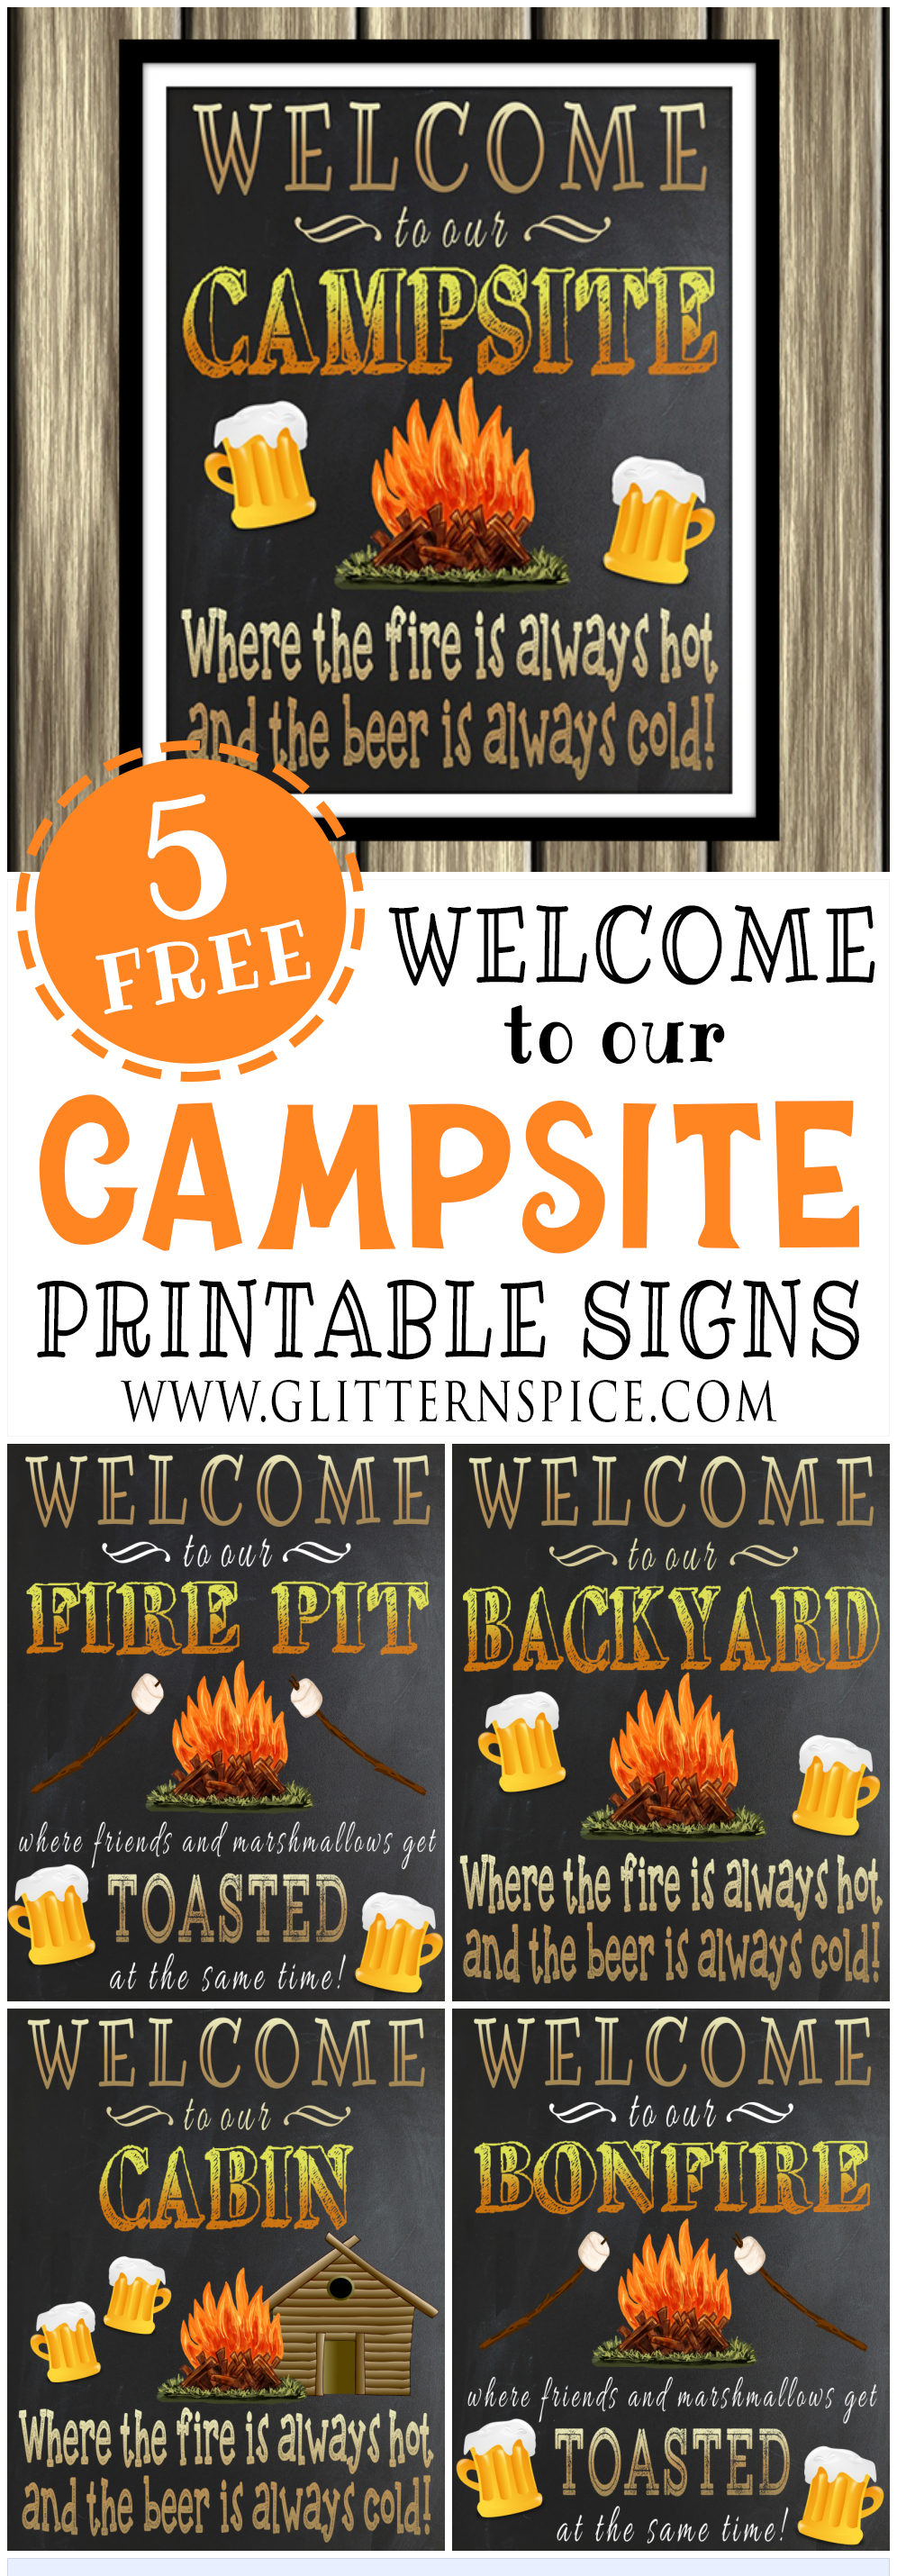 Free Printable Welcome To Our Campsite Sign Plus 4 More Outdoorsy - Free Printable Camping Signs